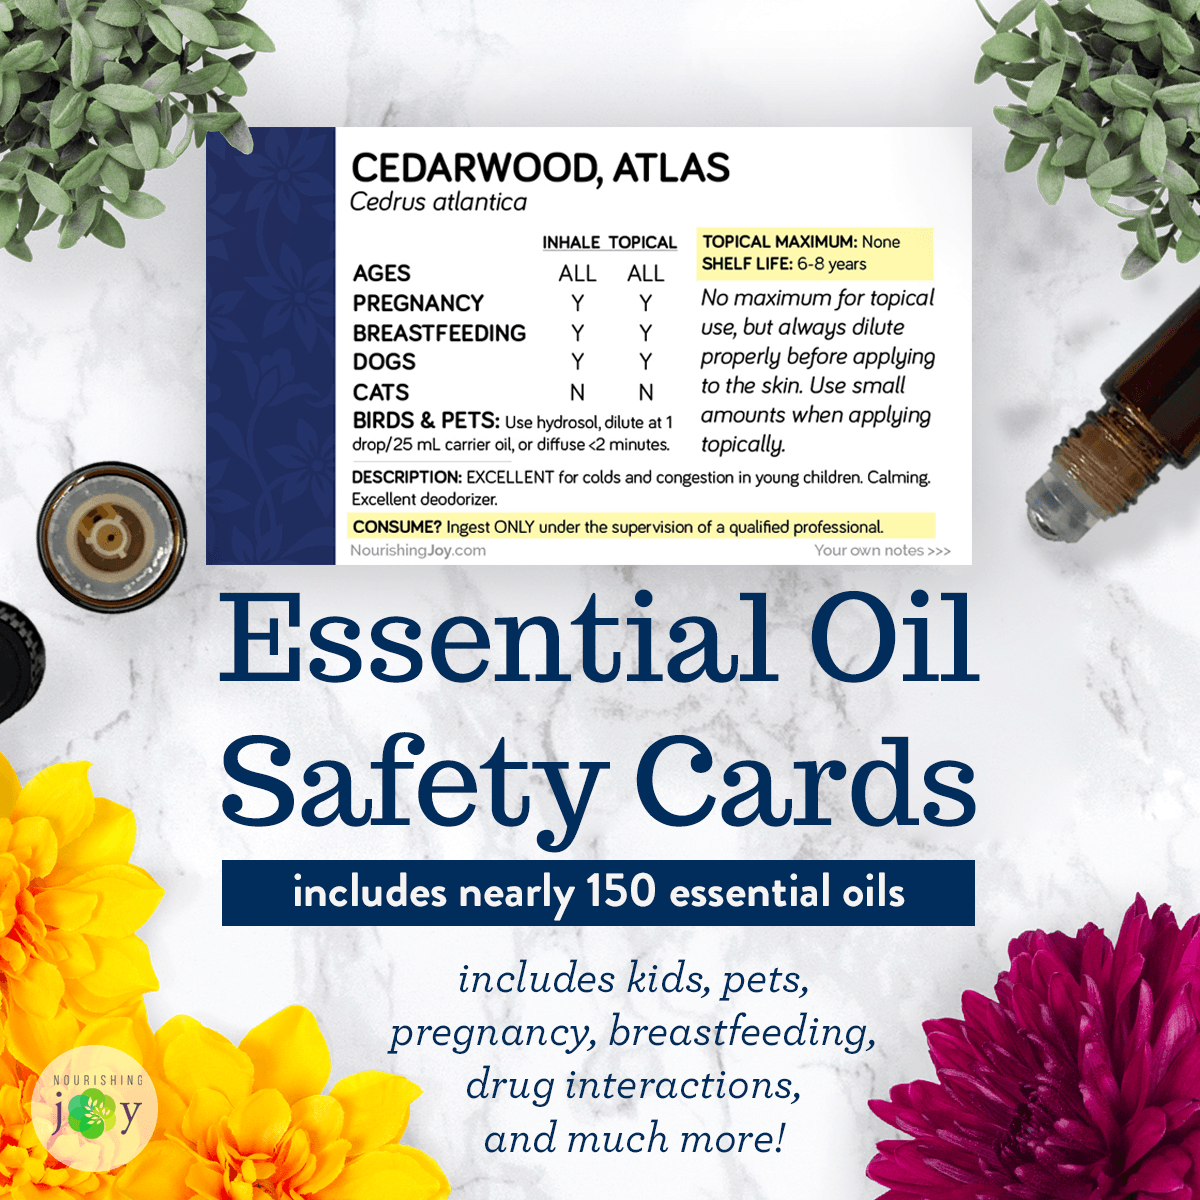 Essential Oil Safety Cards - Your Secret Sale!